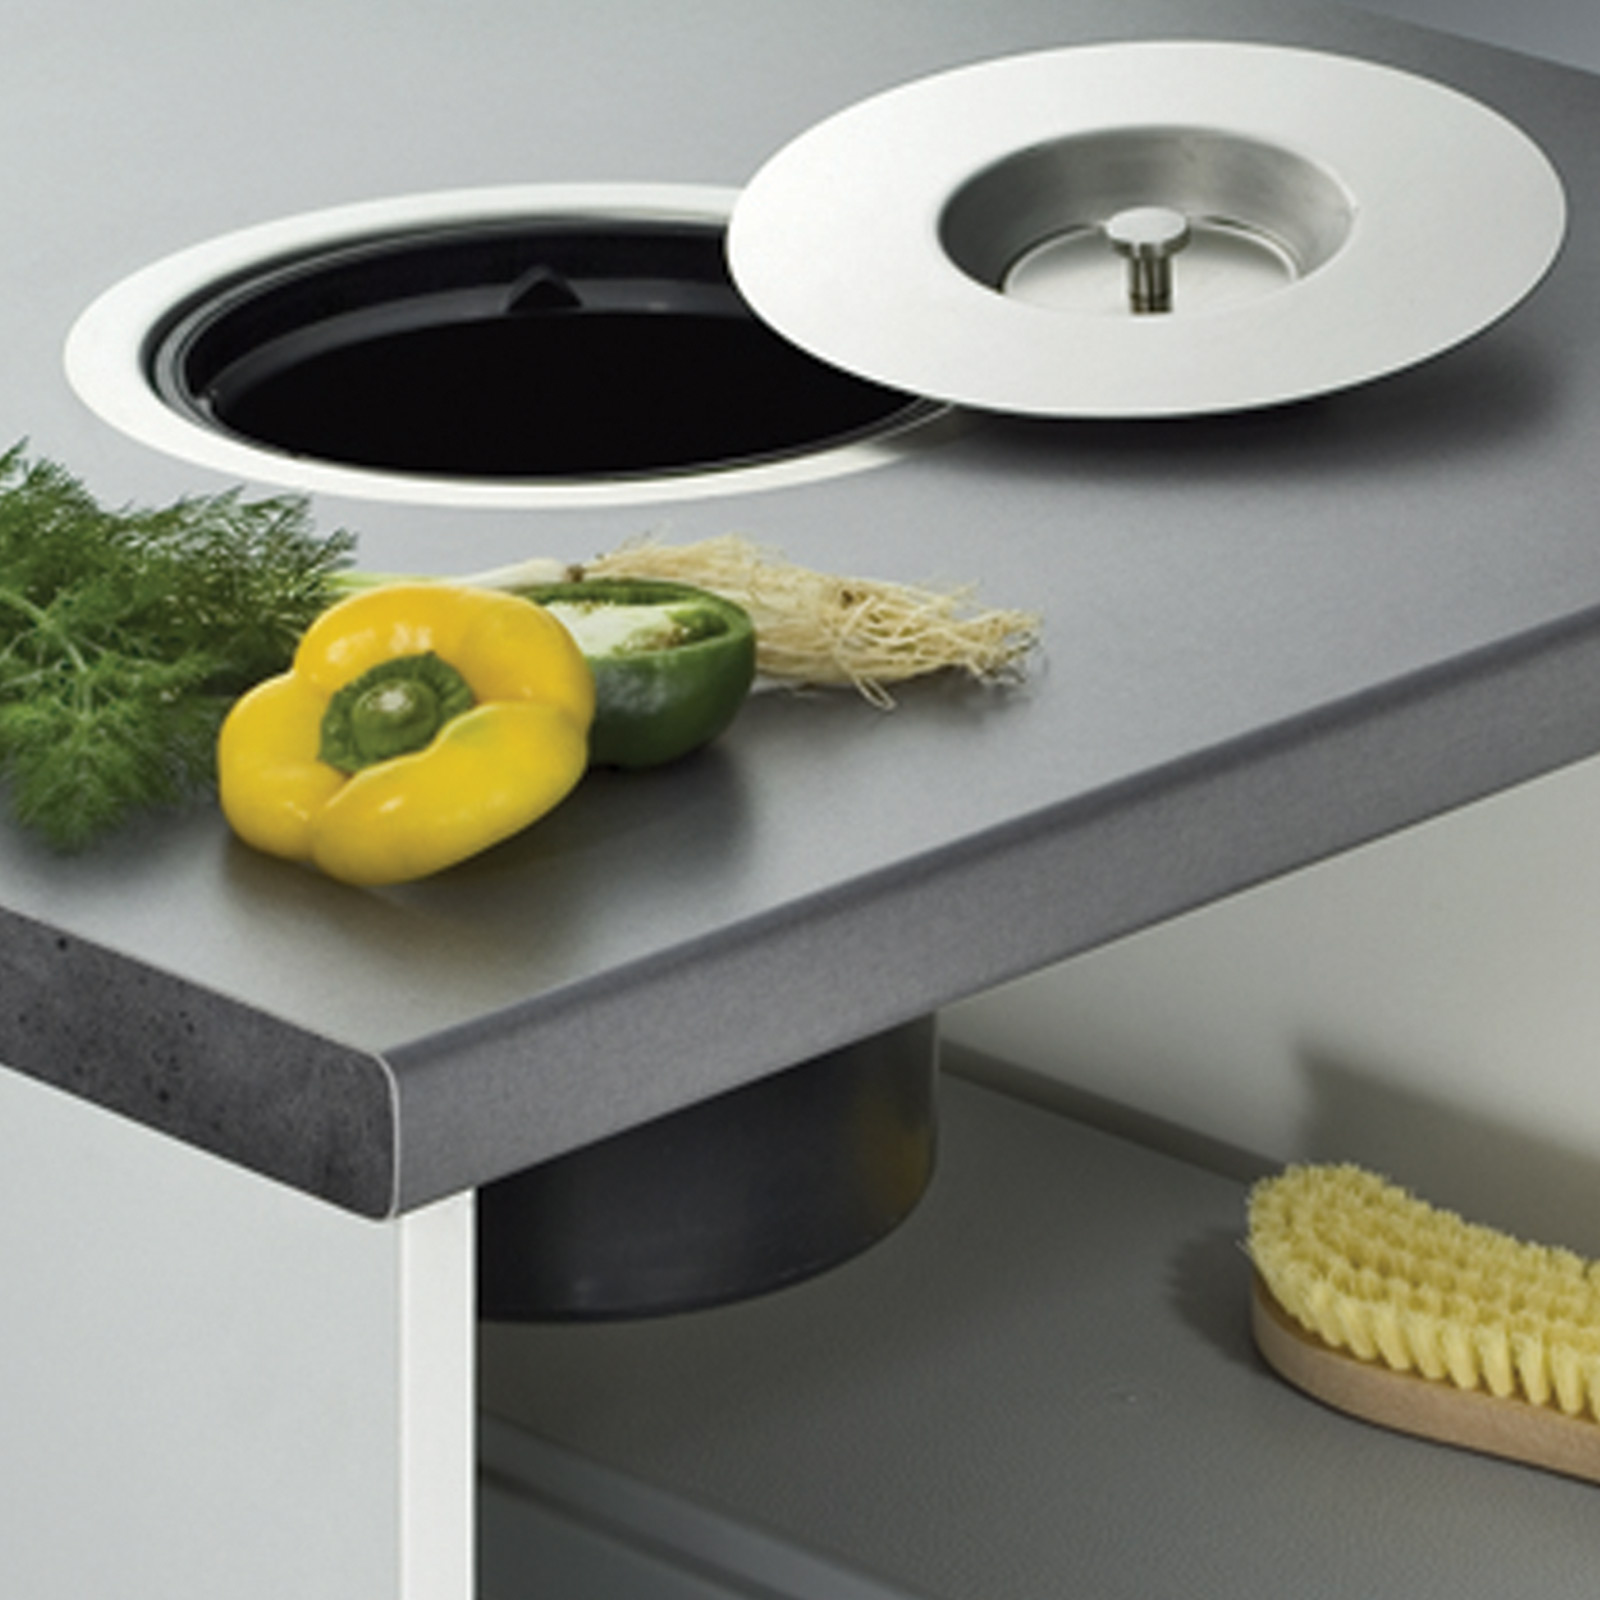 Worktop Mounted Bins